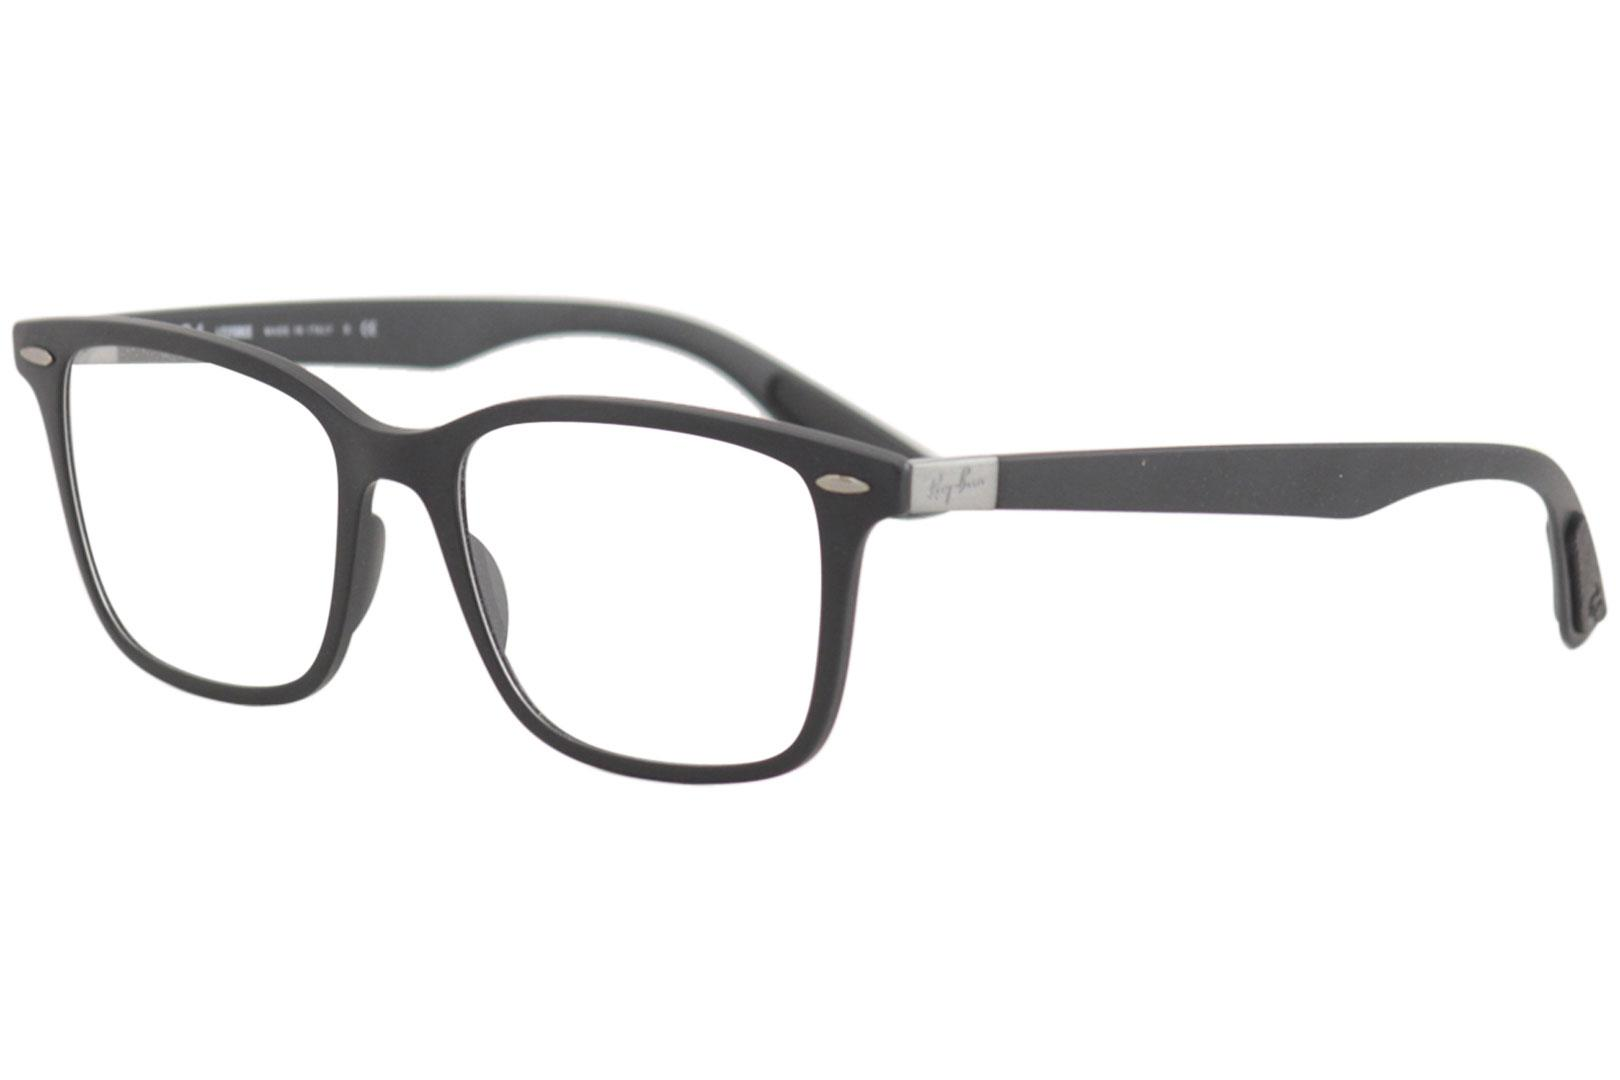 ray ban eyeglasses frames price